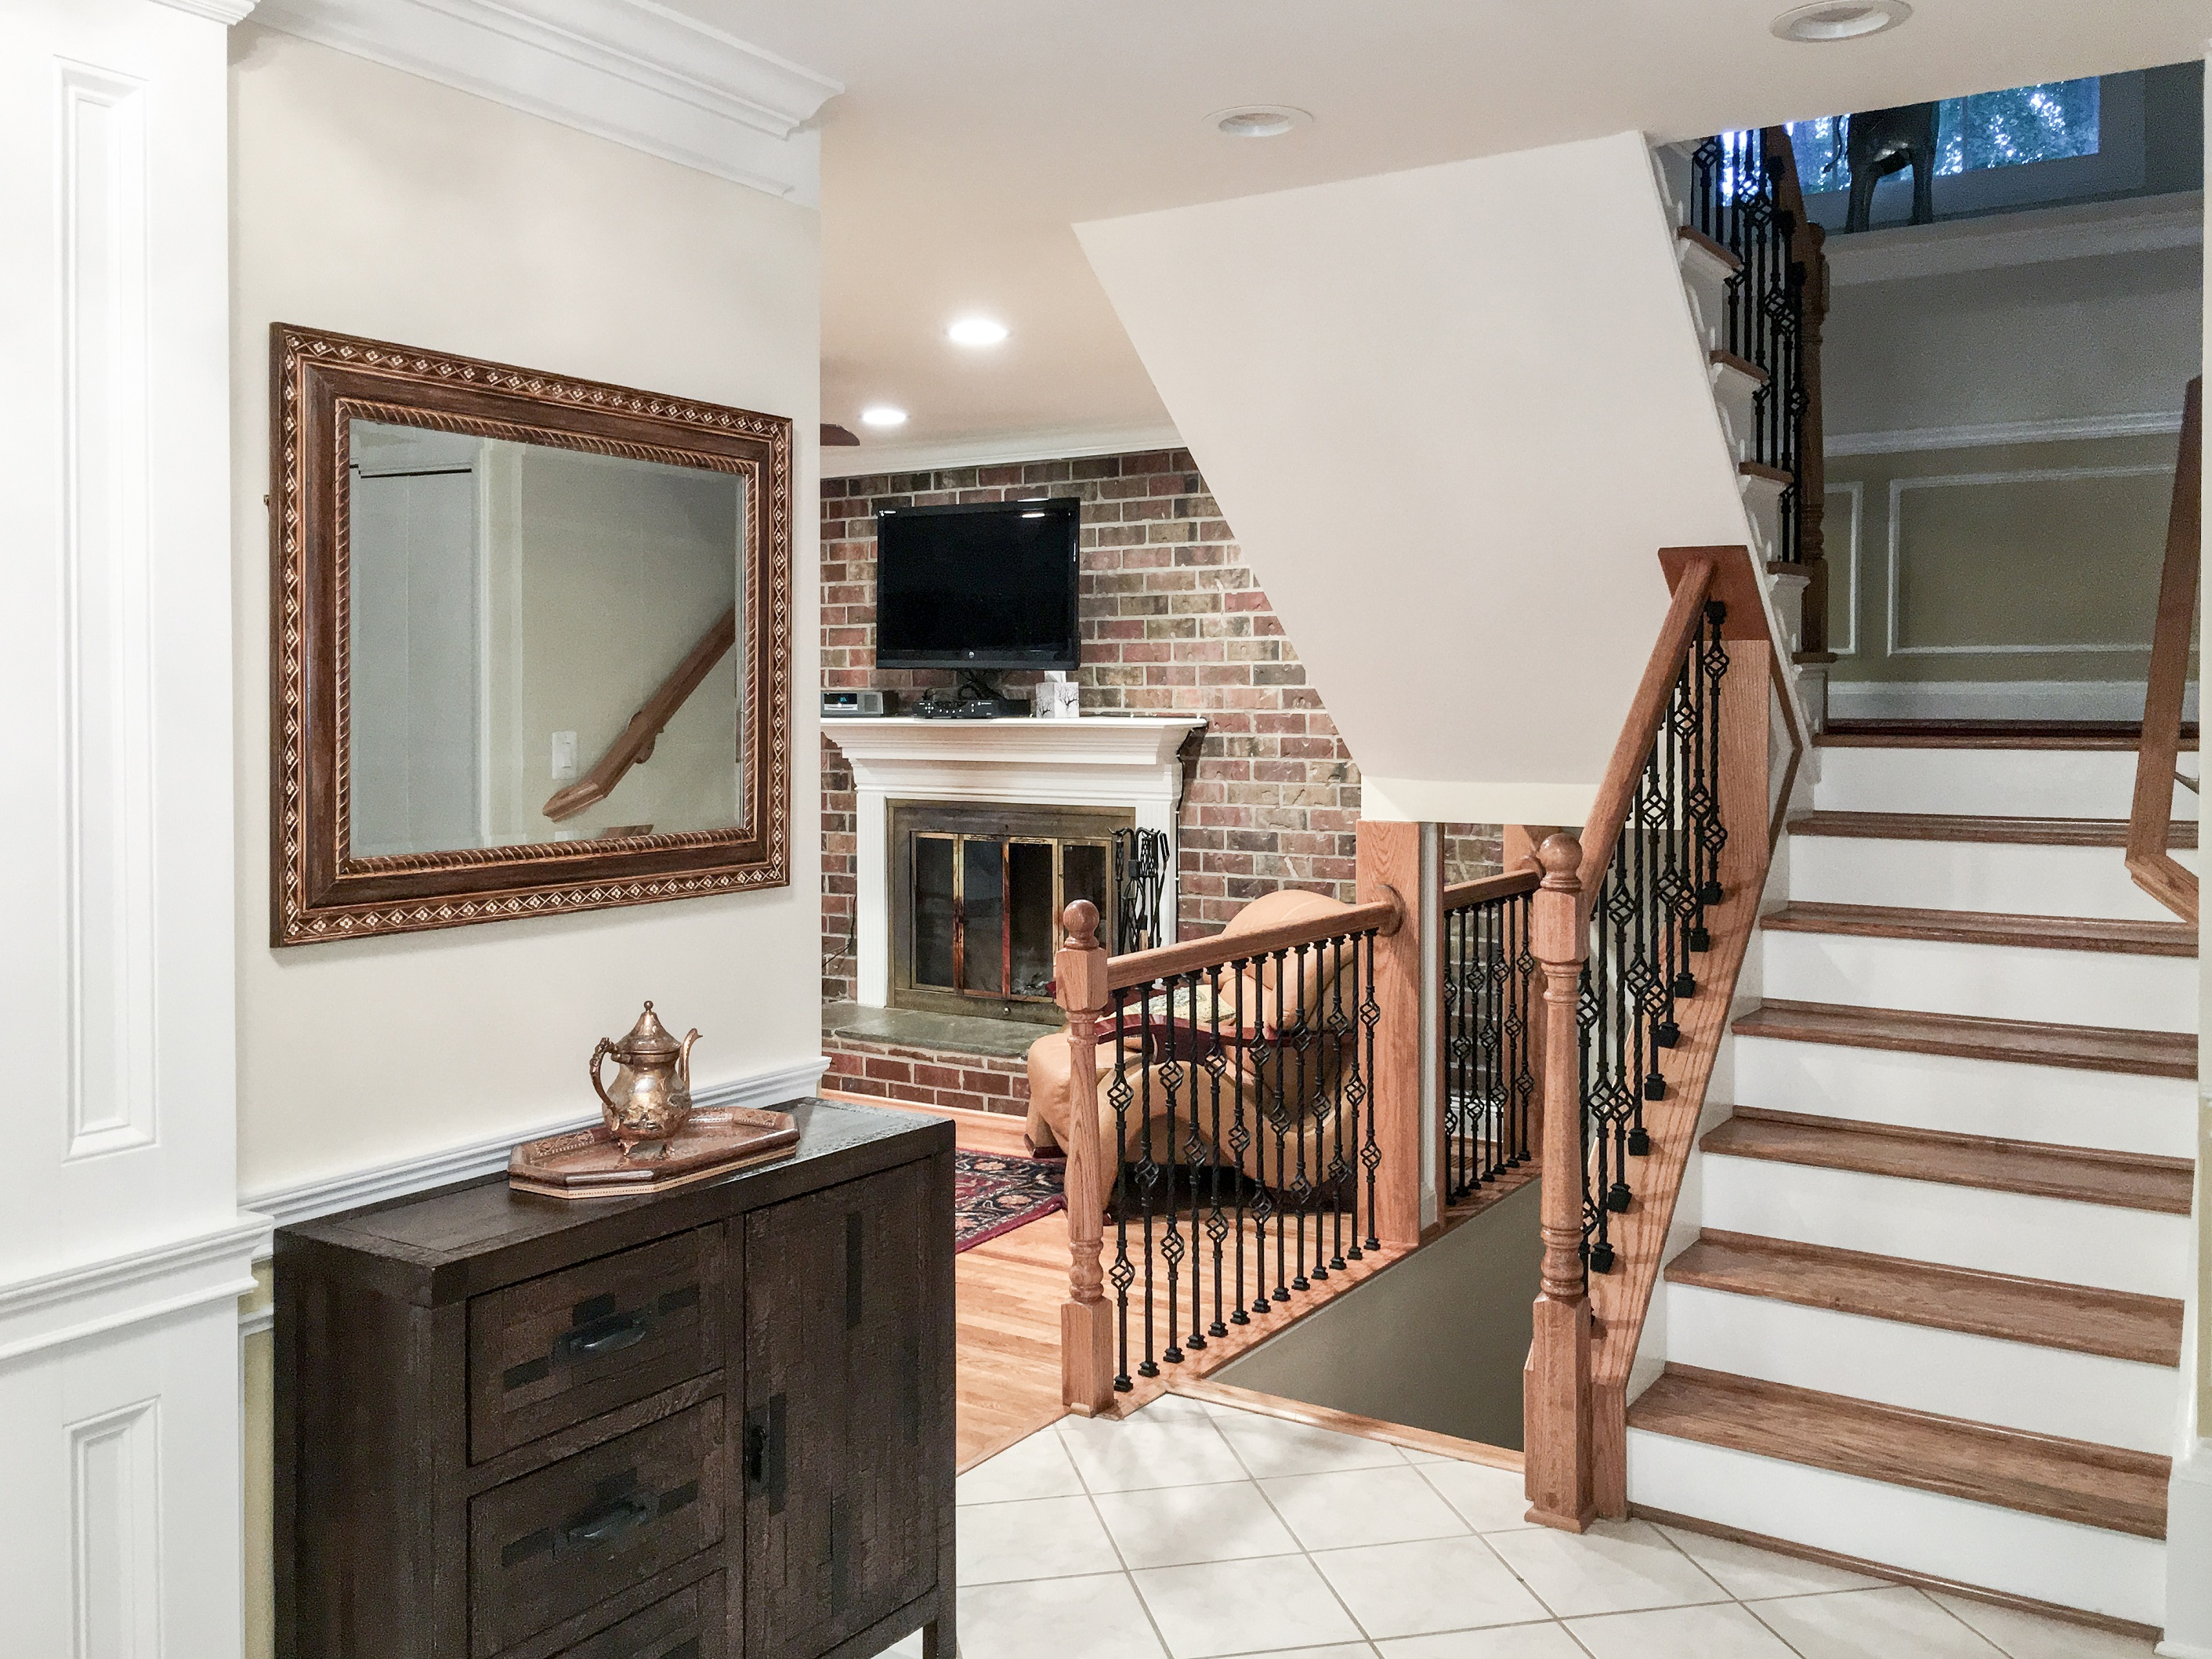 Basement Remodel In Fairfax Virginia